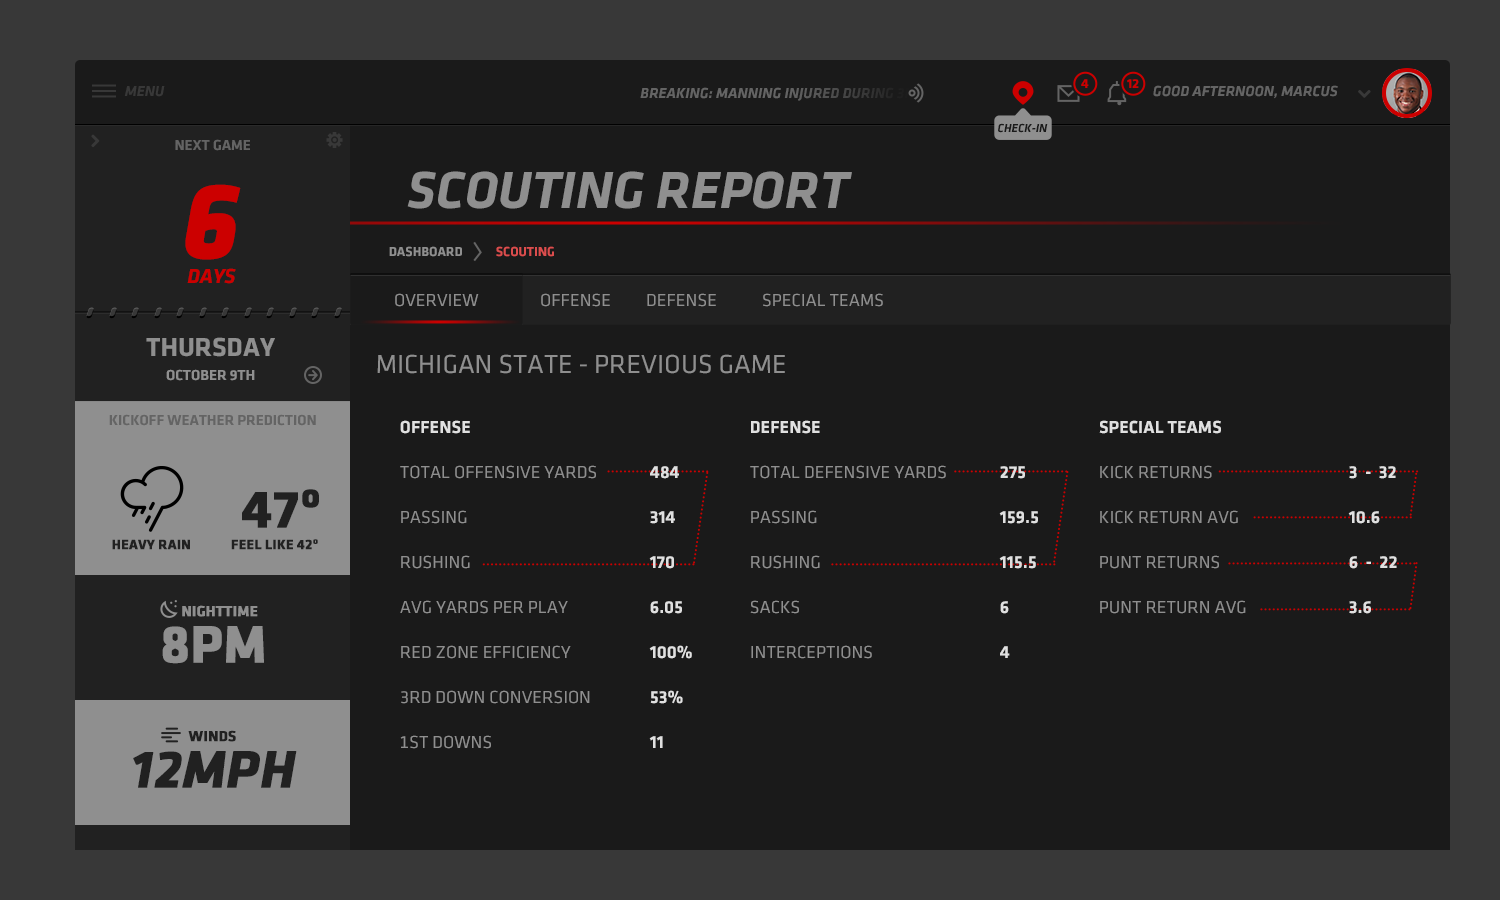 NCAA - Scouting report